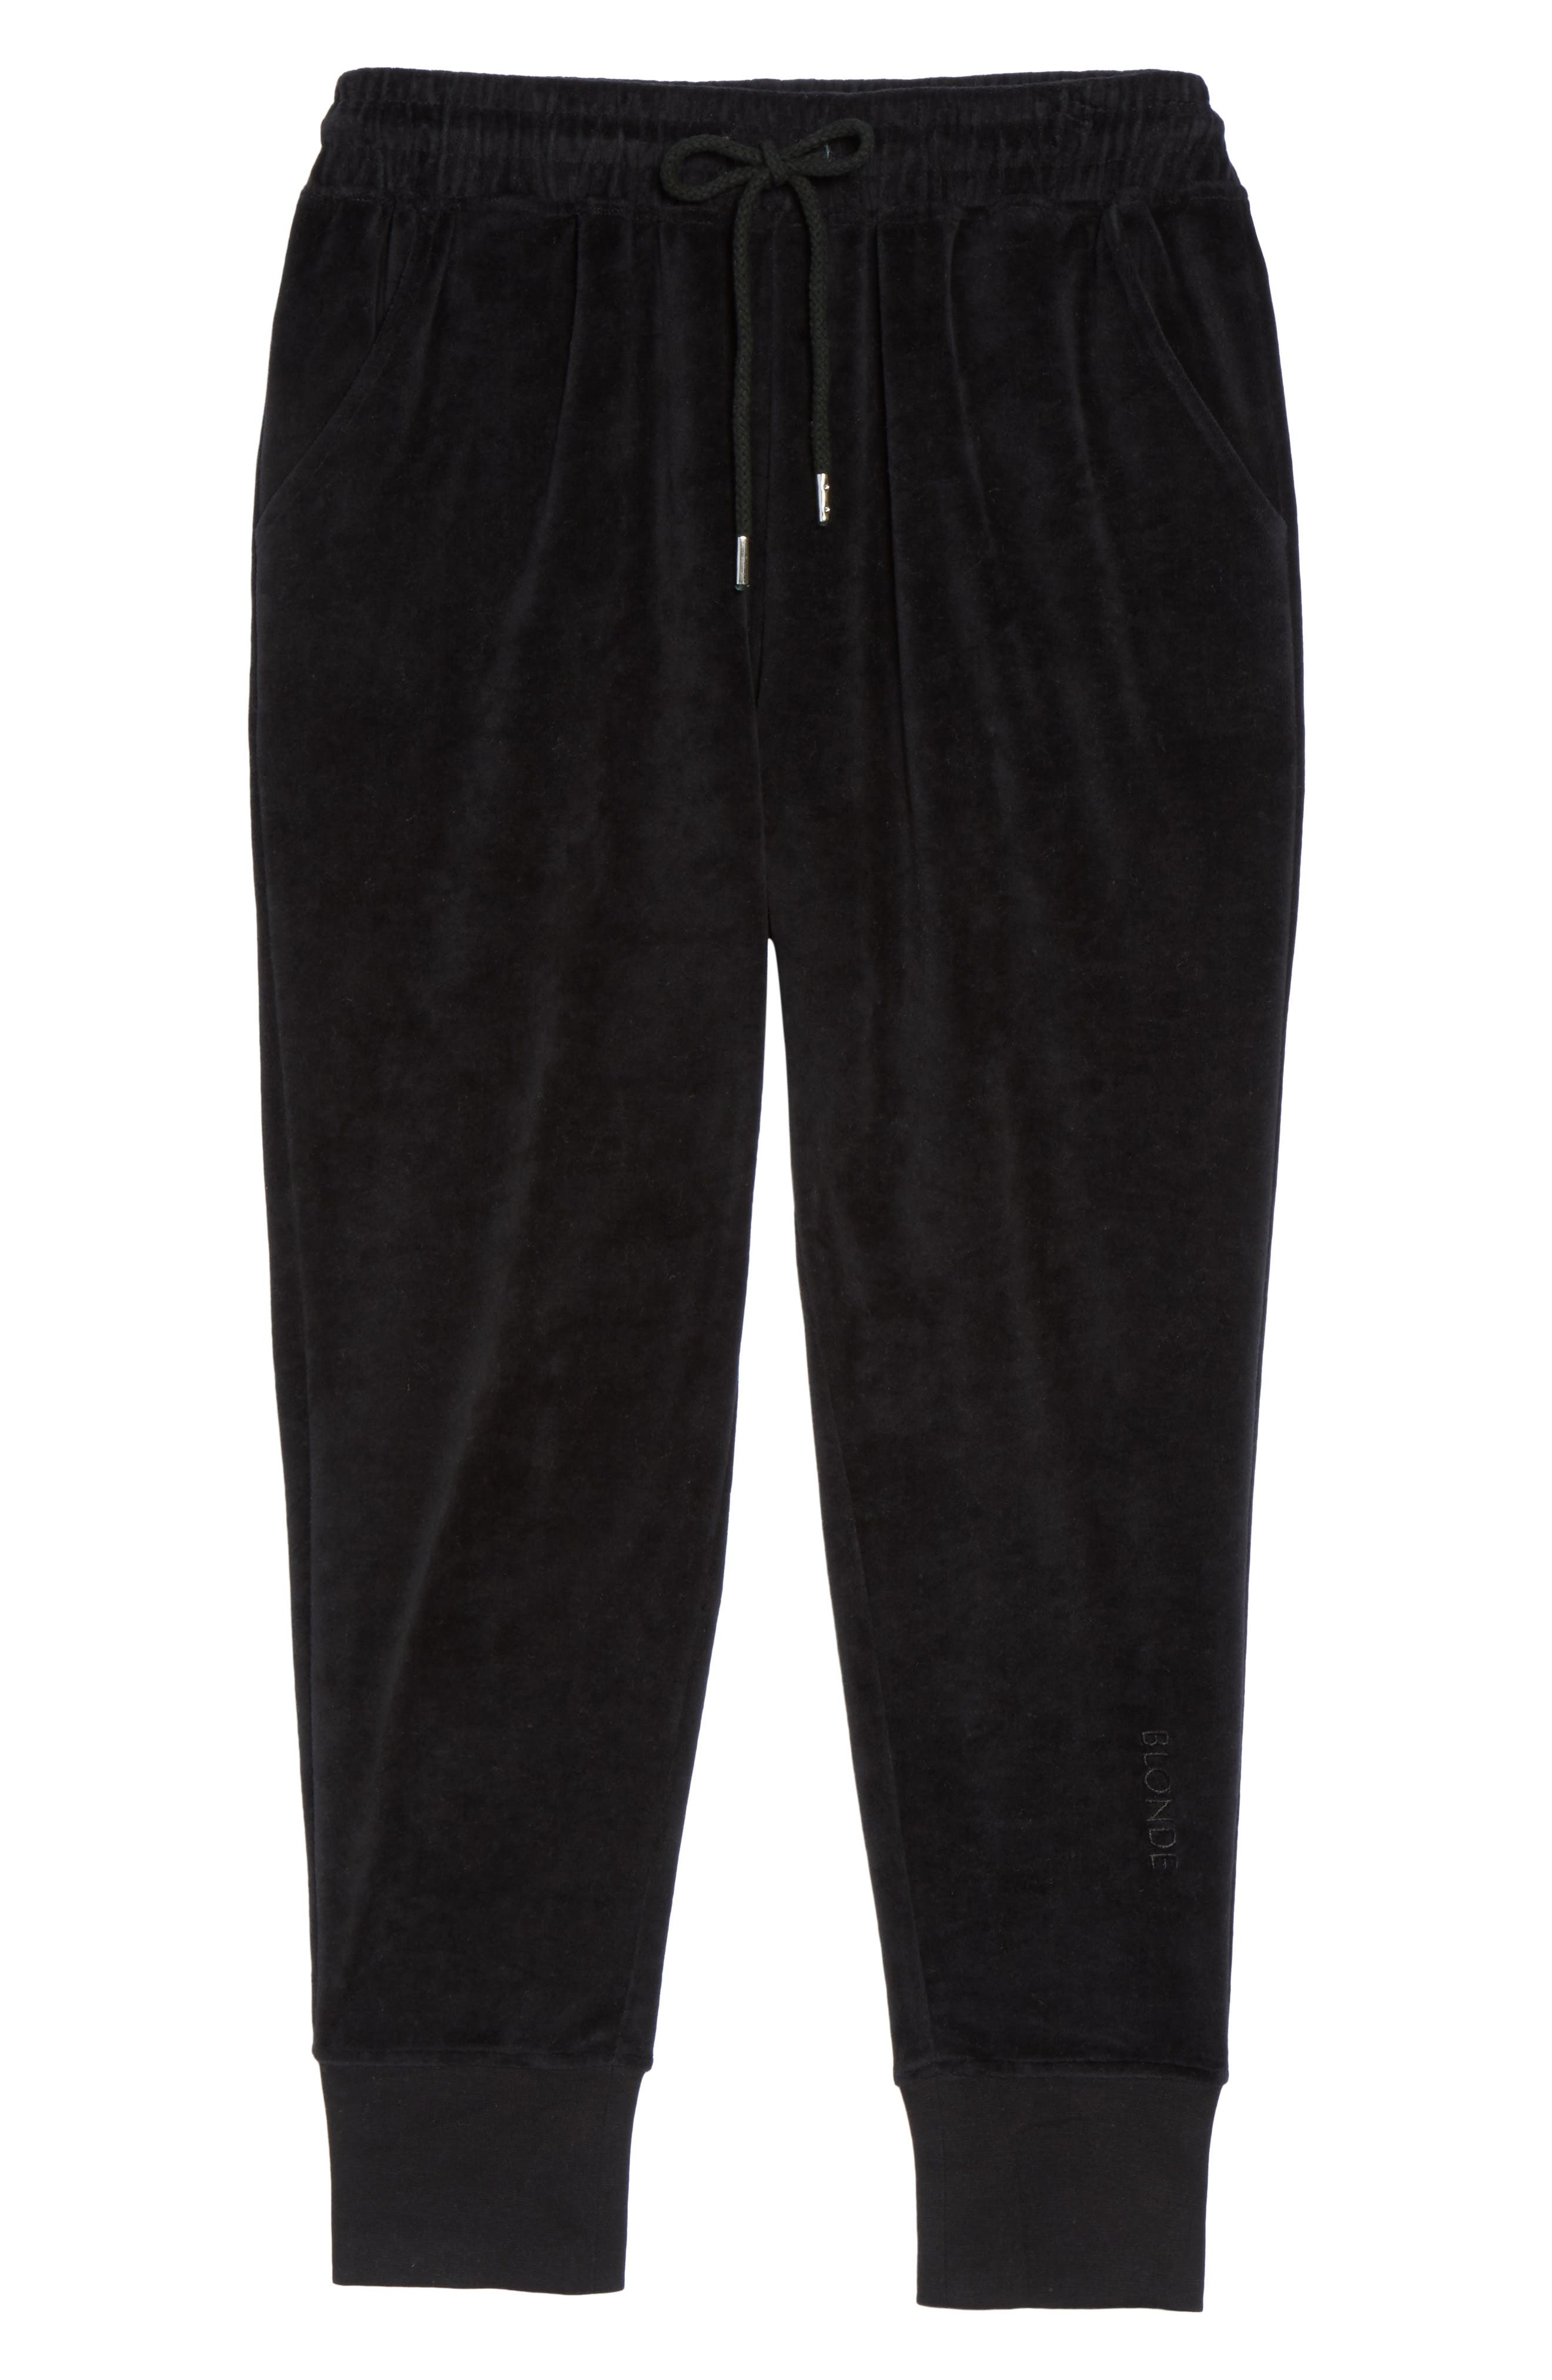 Blonde Embroidered Velour Jogger Pants,                             Alternate thumbnail 6, color,                             001